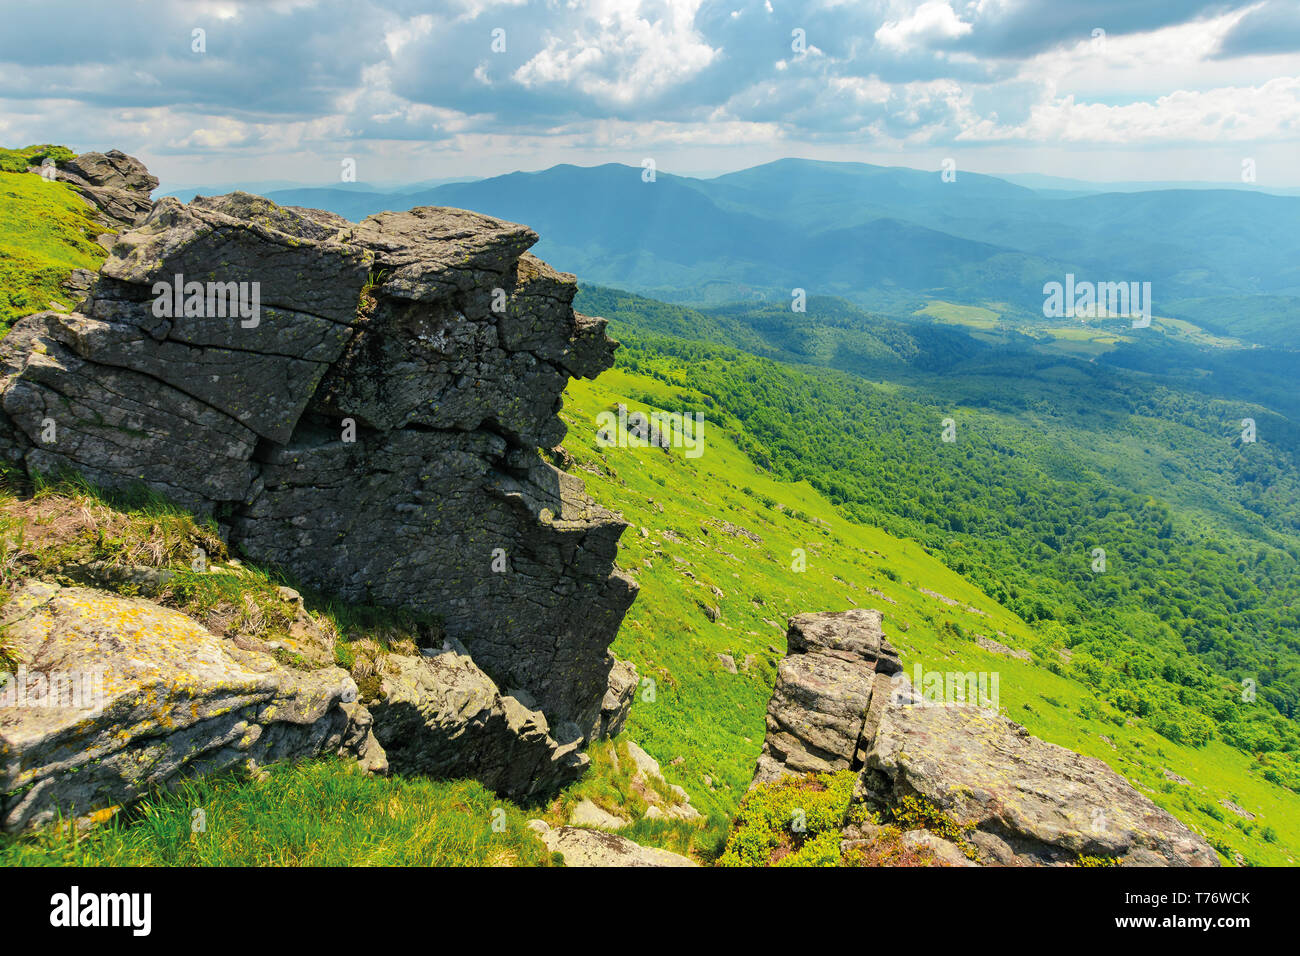 huge rocky formations on the grassy hills. beautiful mountain landscape in late summer on a cloudy day. location Runa mountain, Ukraine - Stock Image